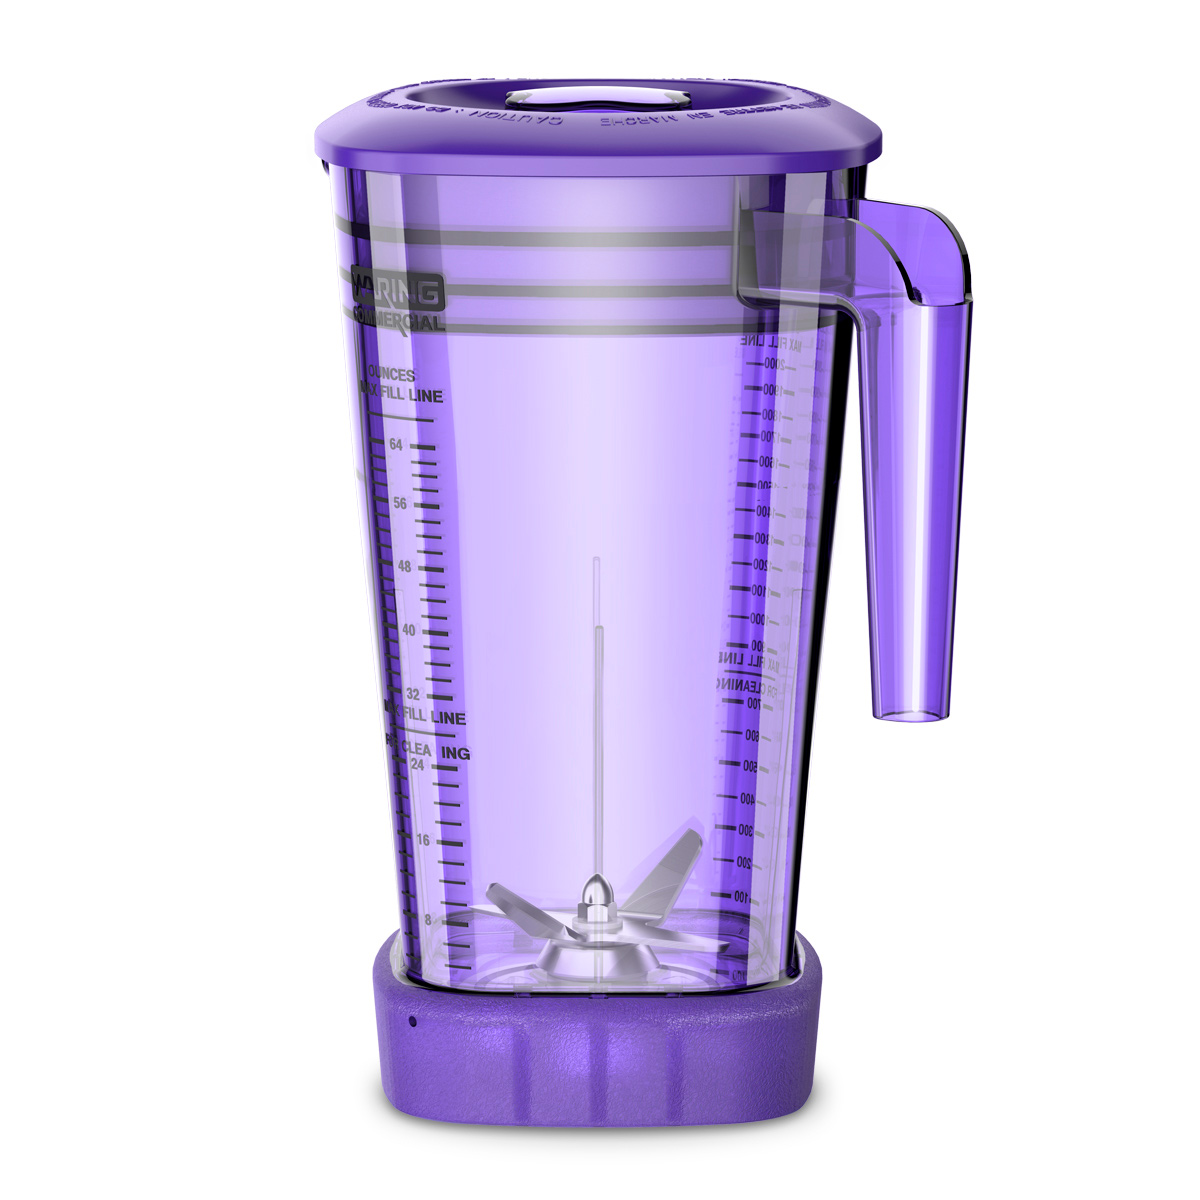 Waring CAC95-10 blender container